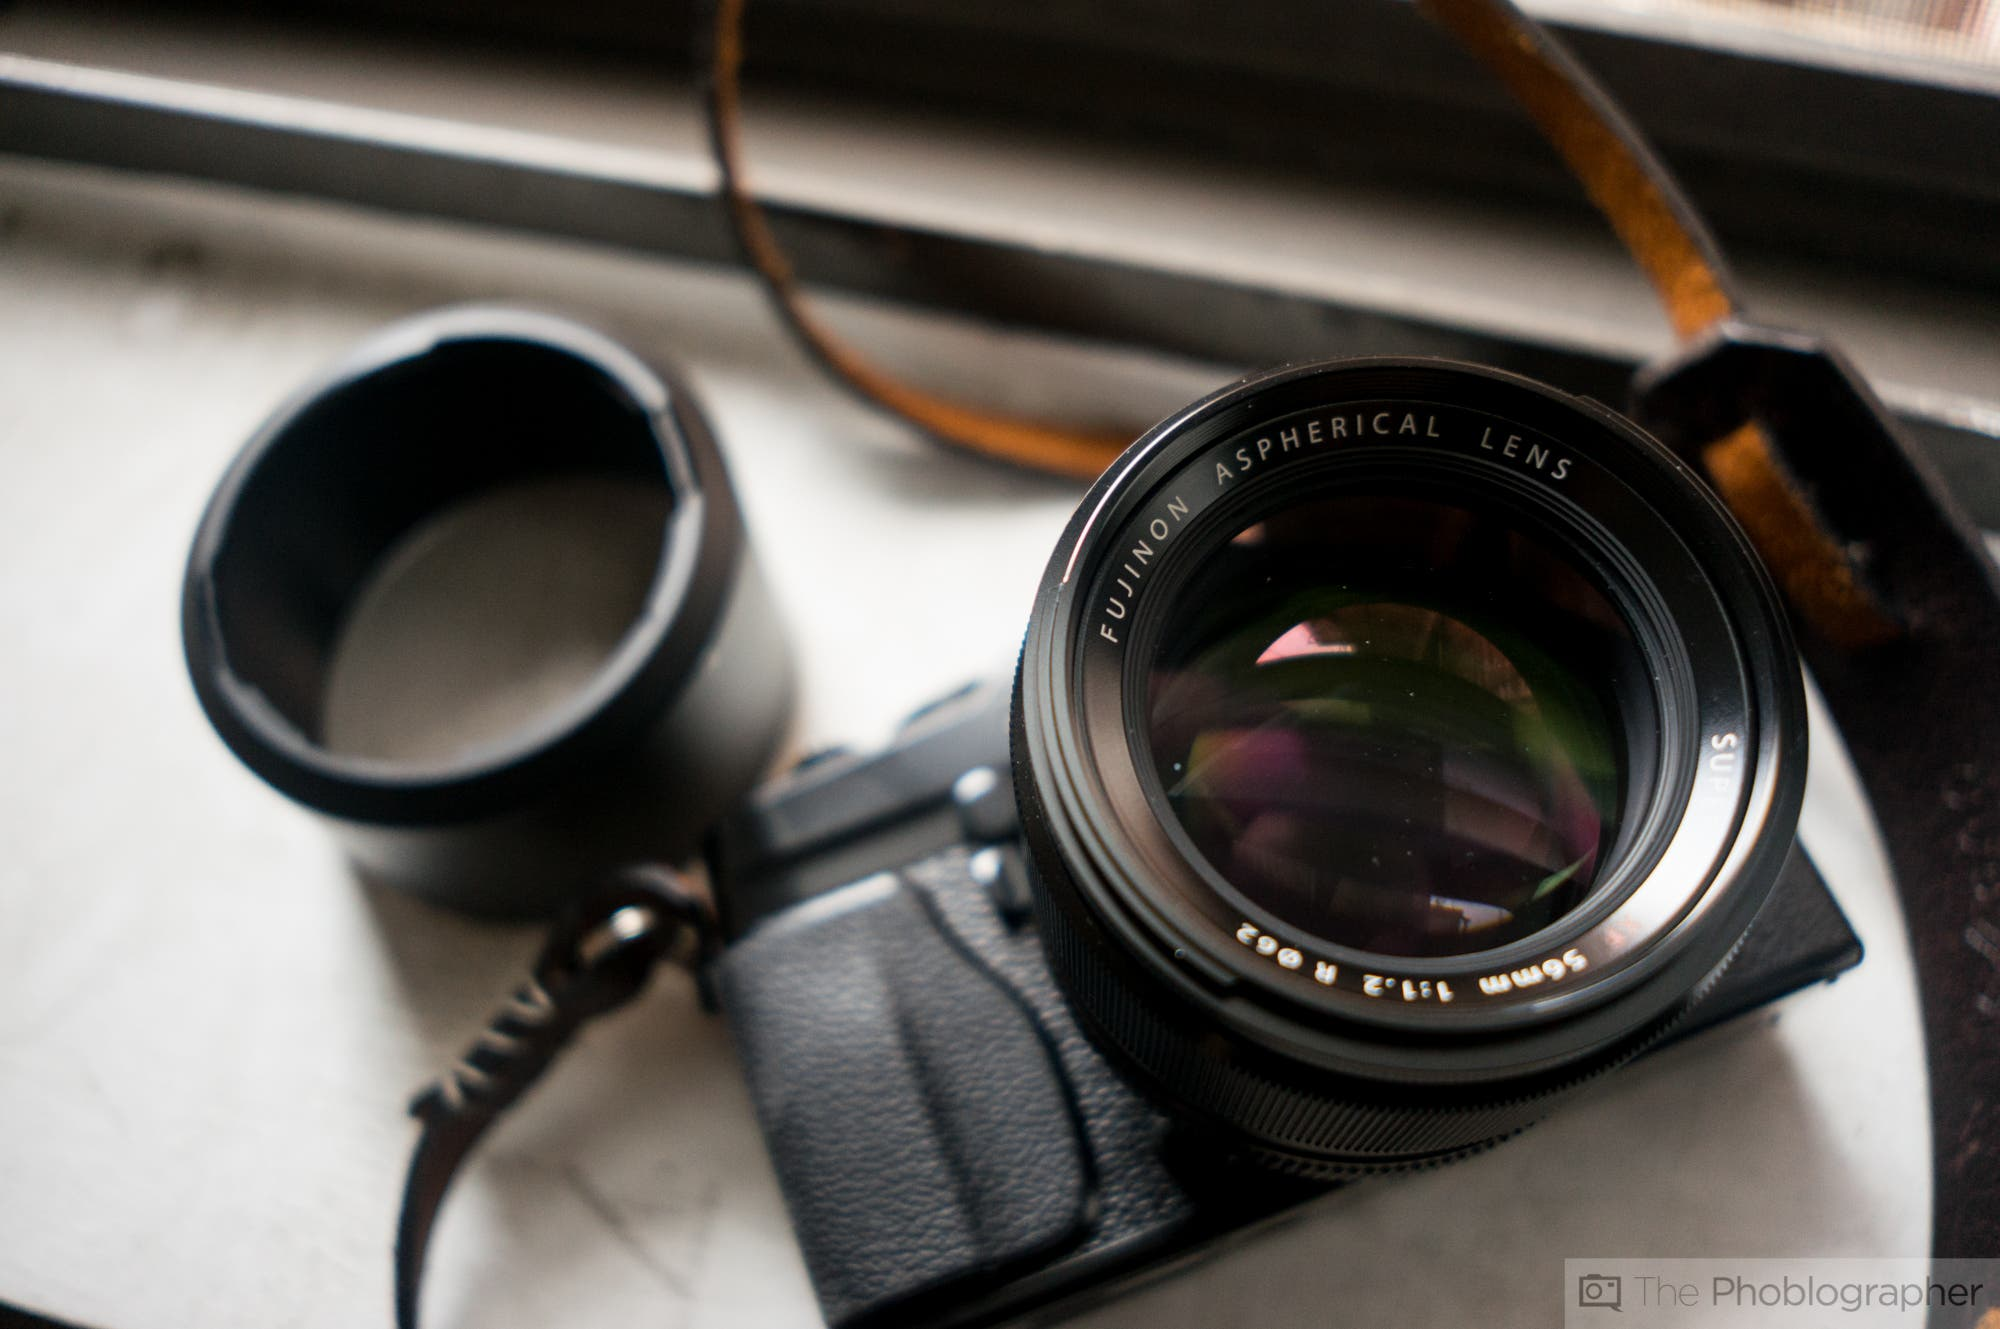 Buyers Guide: Finding the Right Mirrorless Camera for You